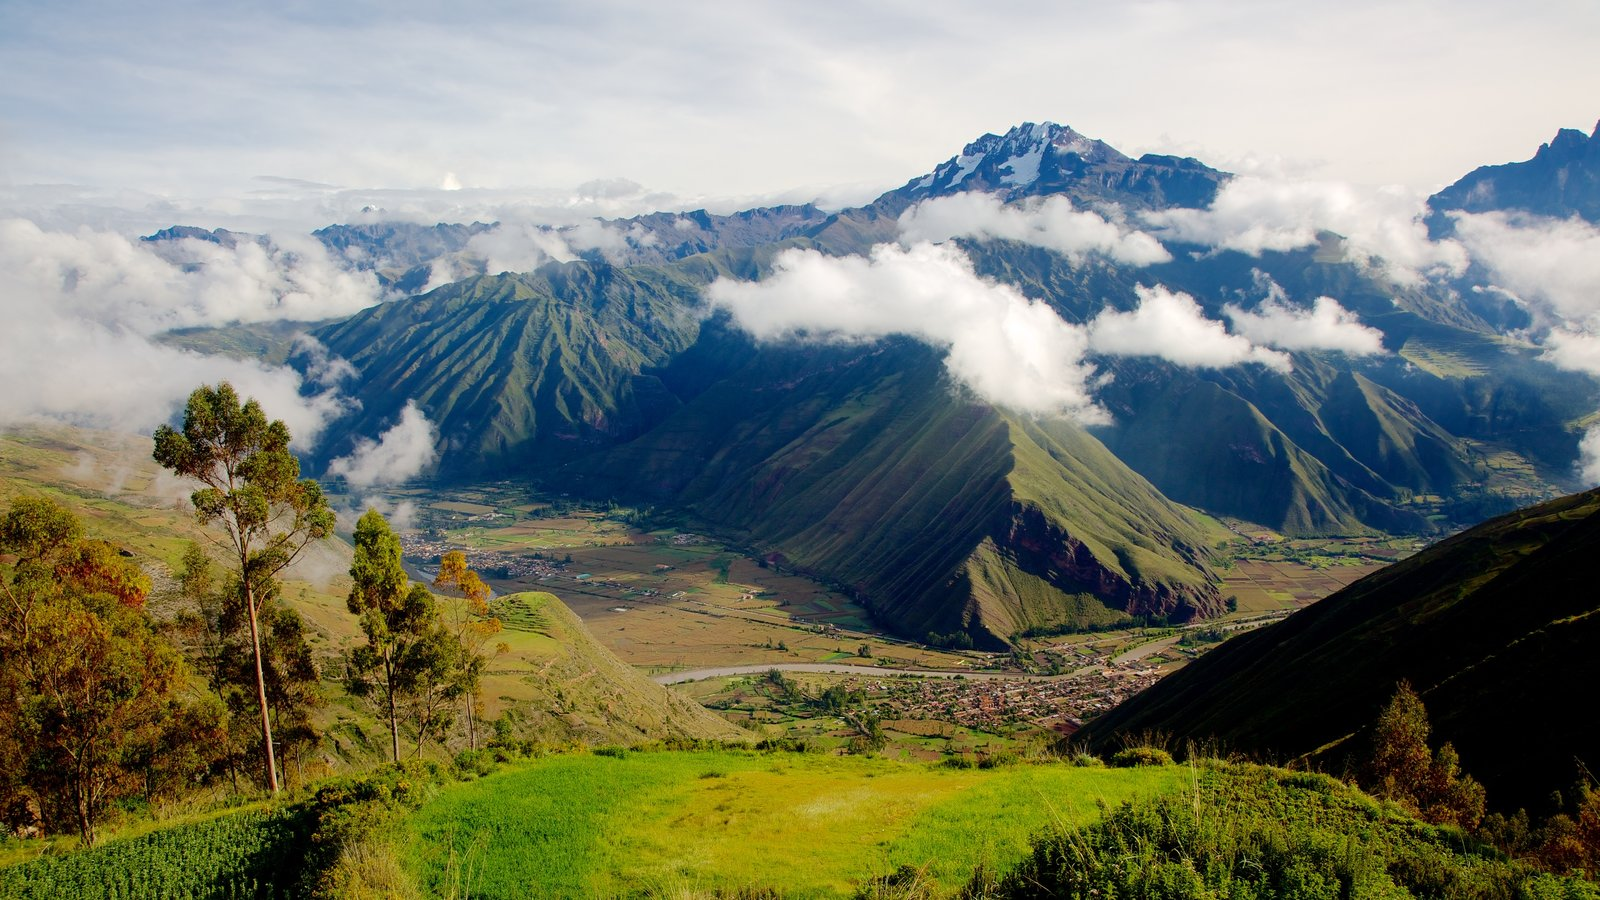 Urubamba which includes landscape views, tranquil scenes and mountains